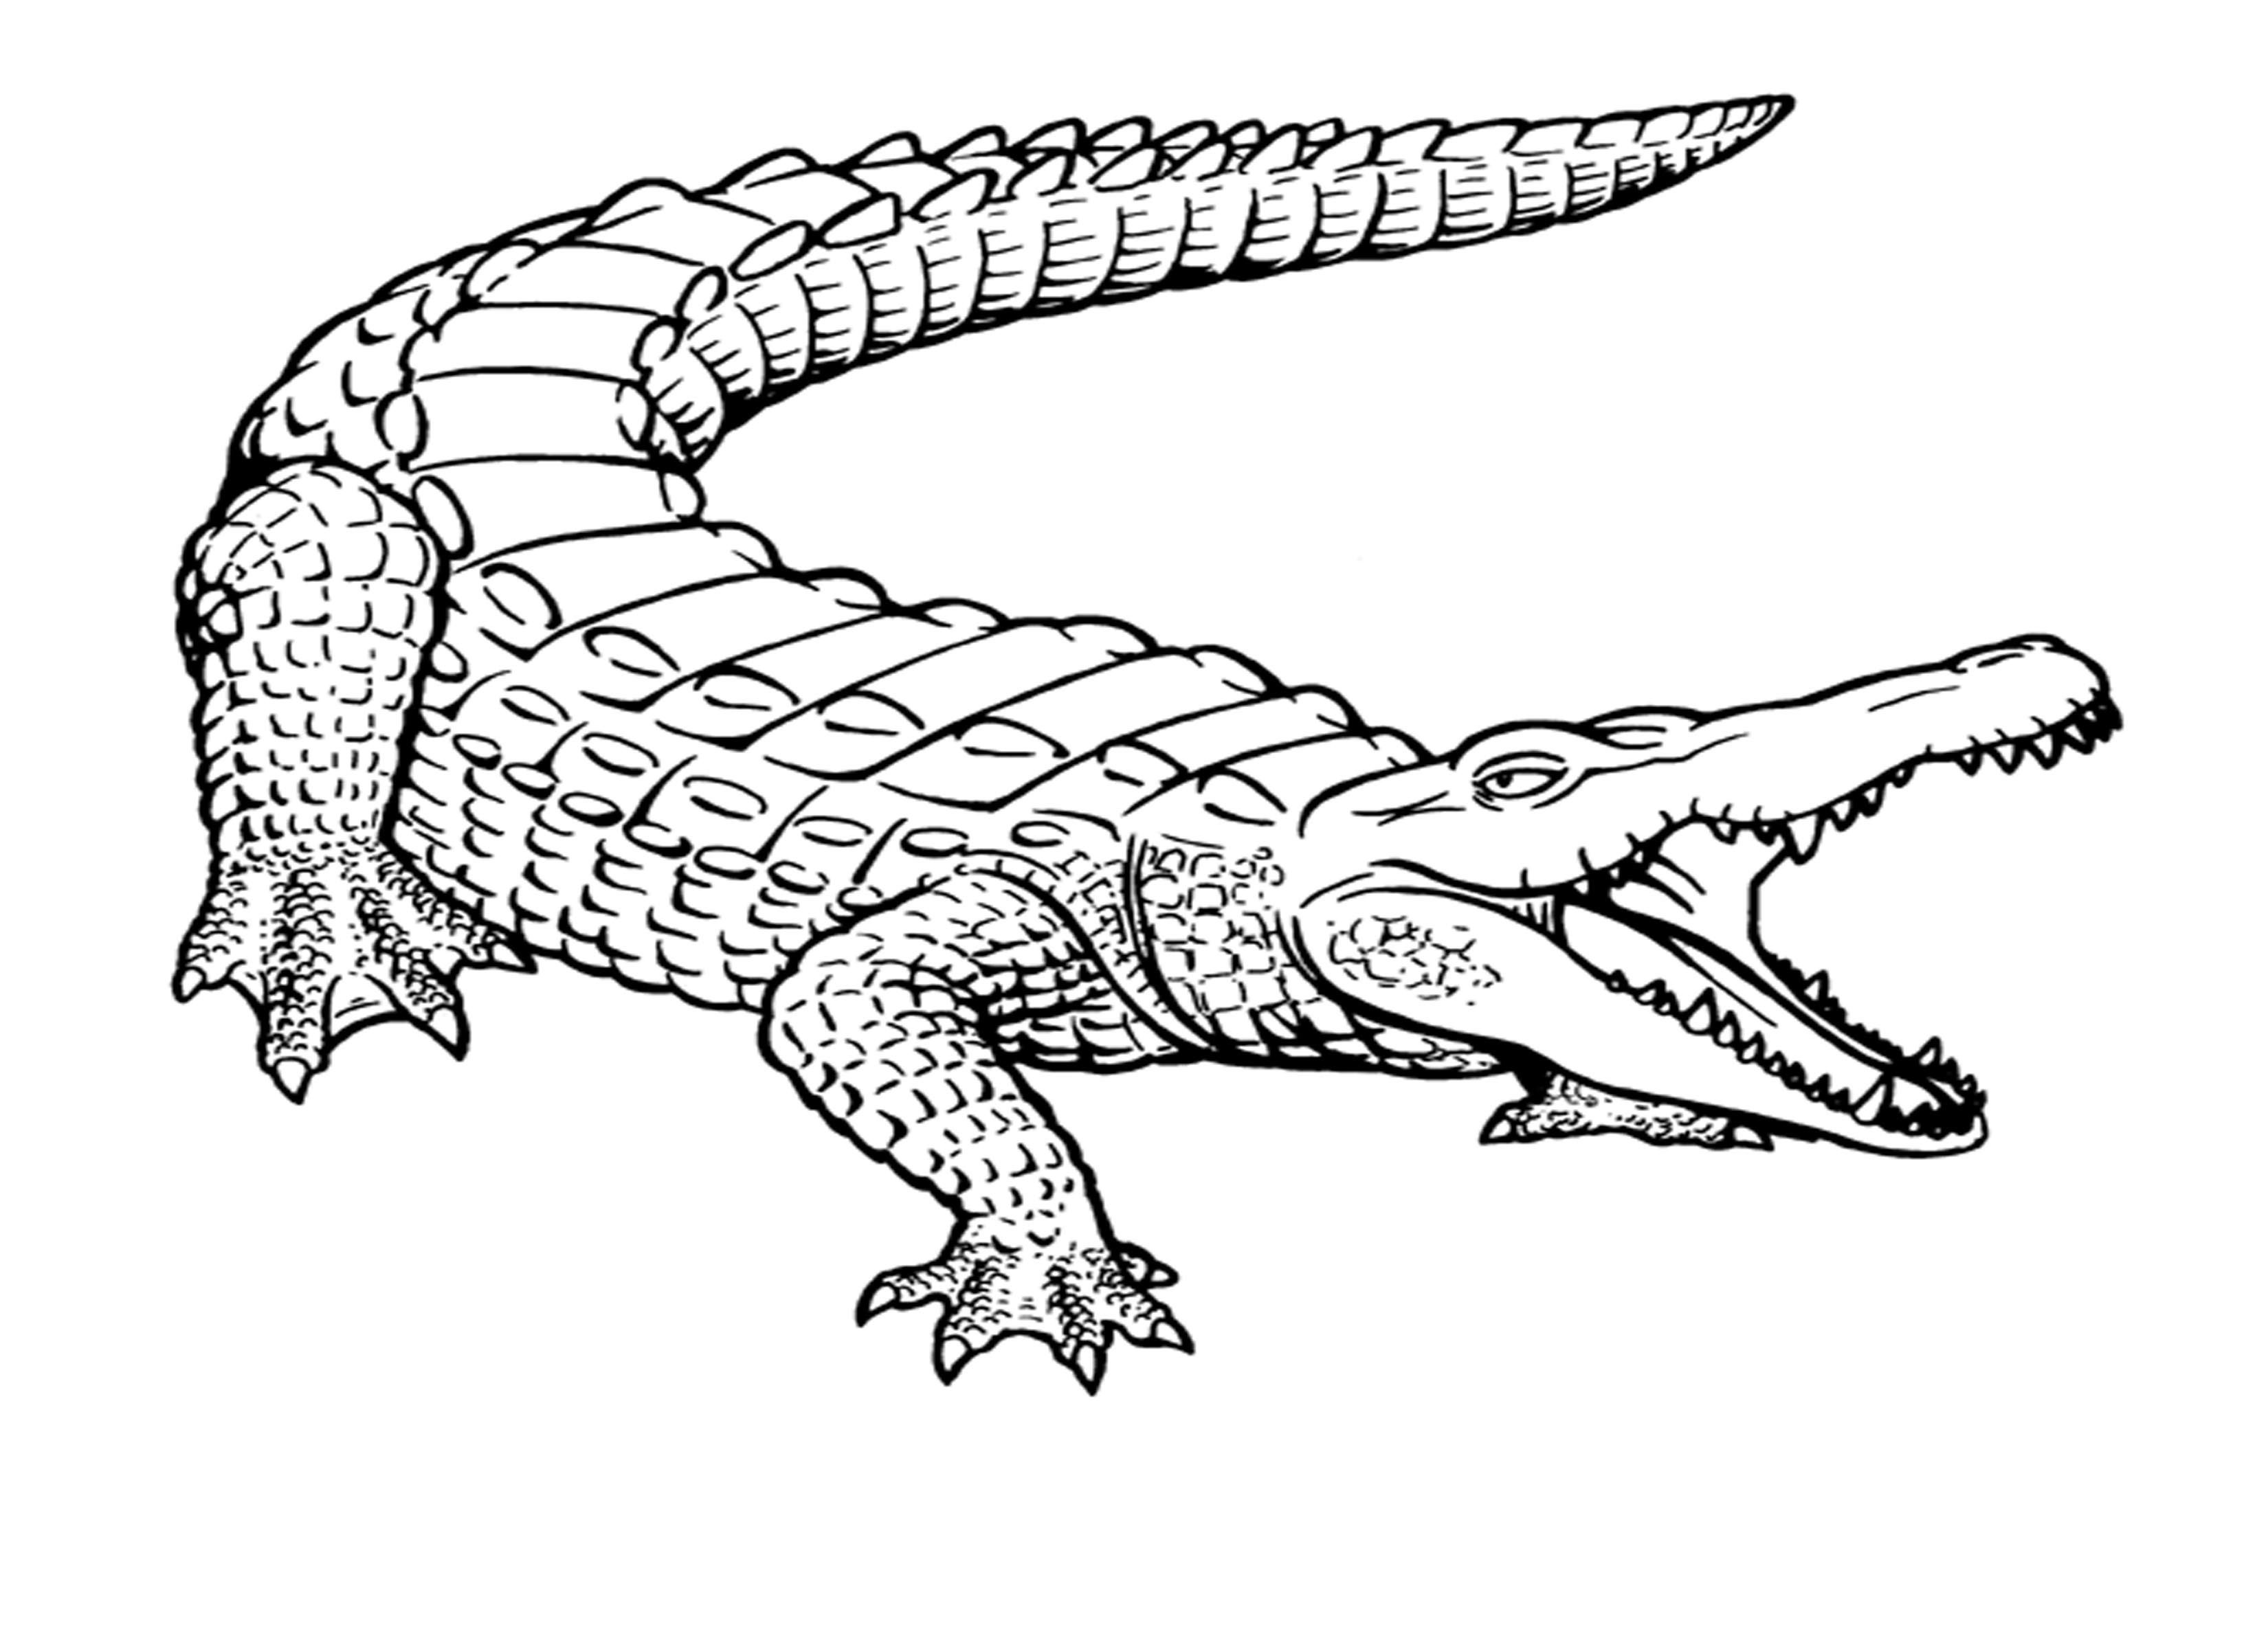 Printable Line Drawings Of Animals : Crocodile coloring pages kids g ms pinterest